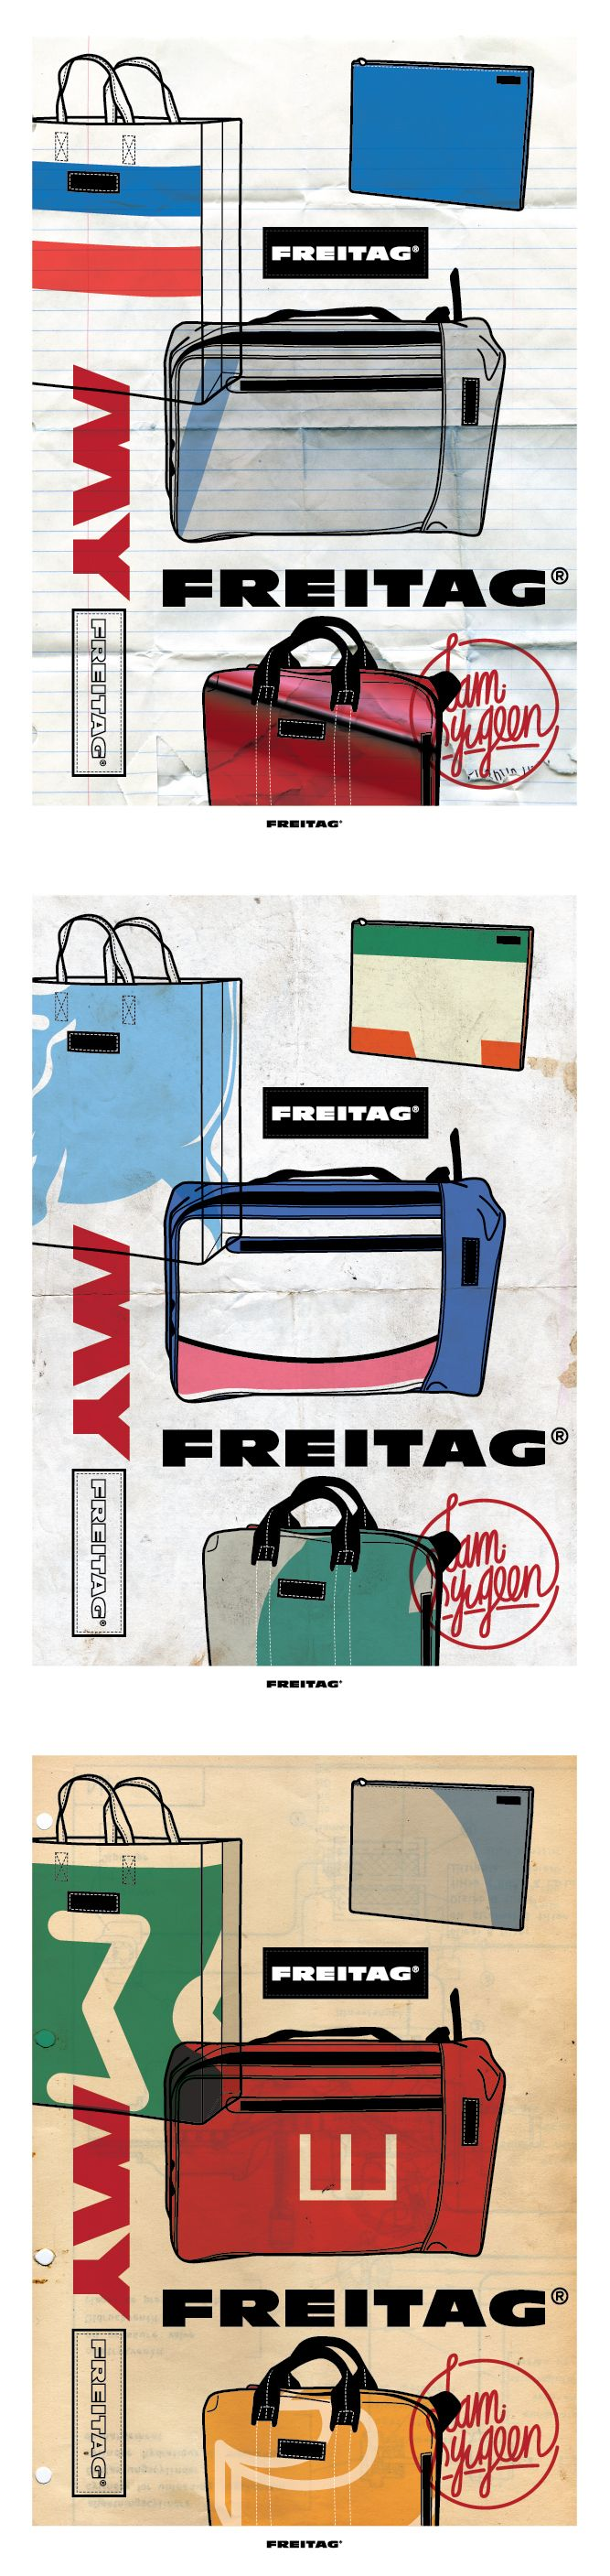 'My Freitag' Designed by Ryugoon.